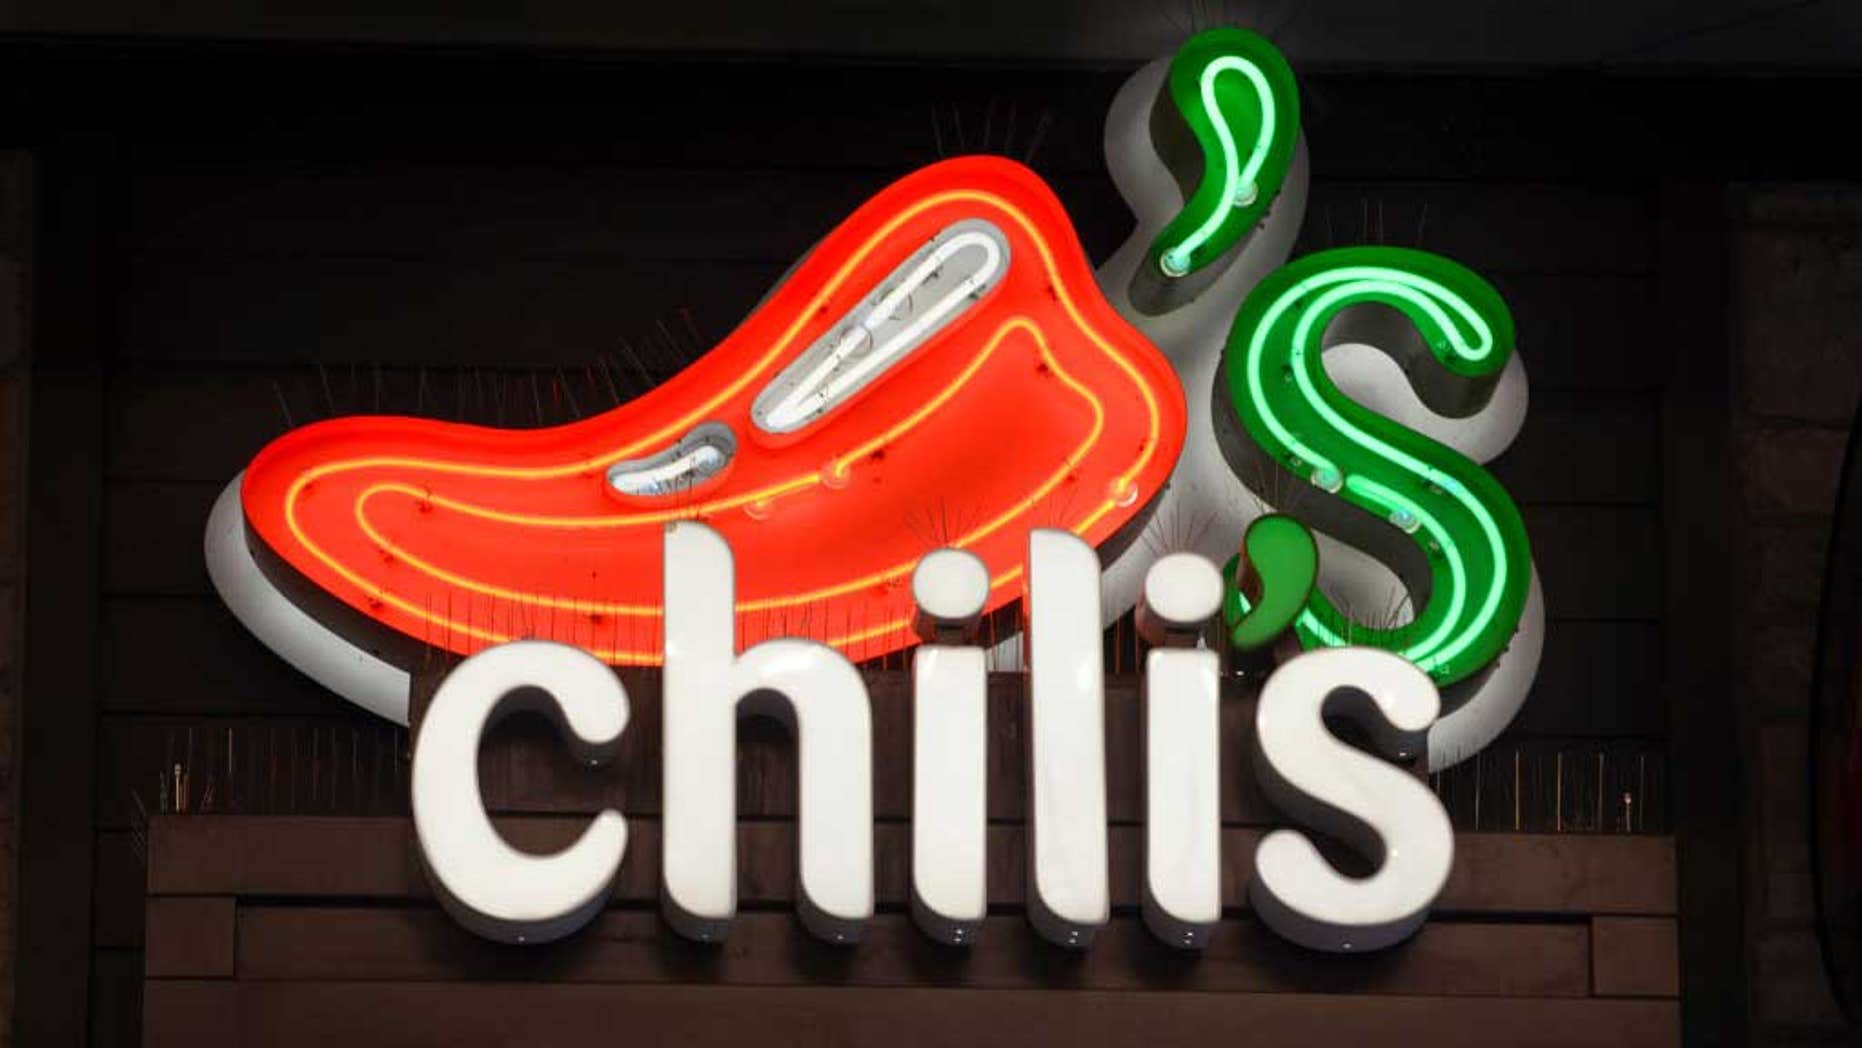 In jubilee of a 1.7 million smoothness recipients, Chili's is charity giveaway smoothness by Nov. 19.